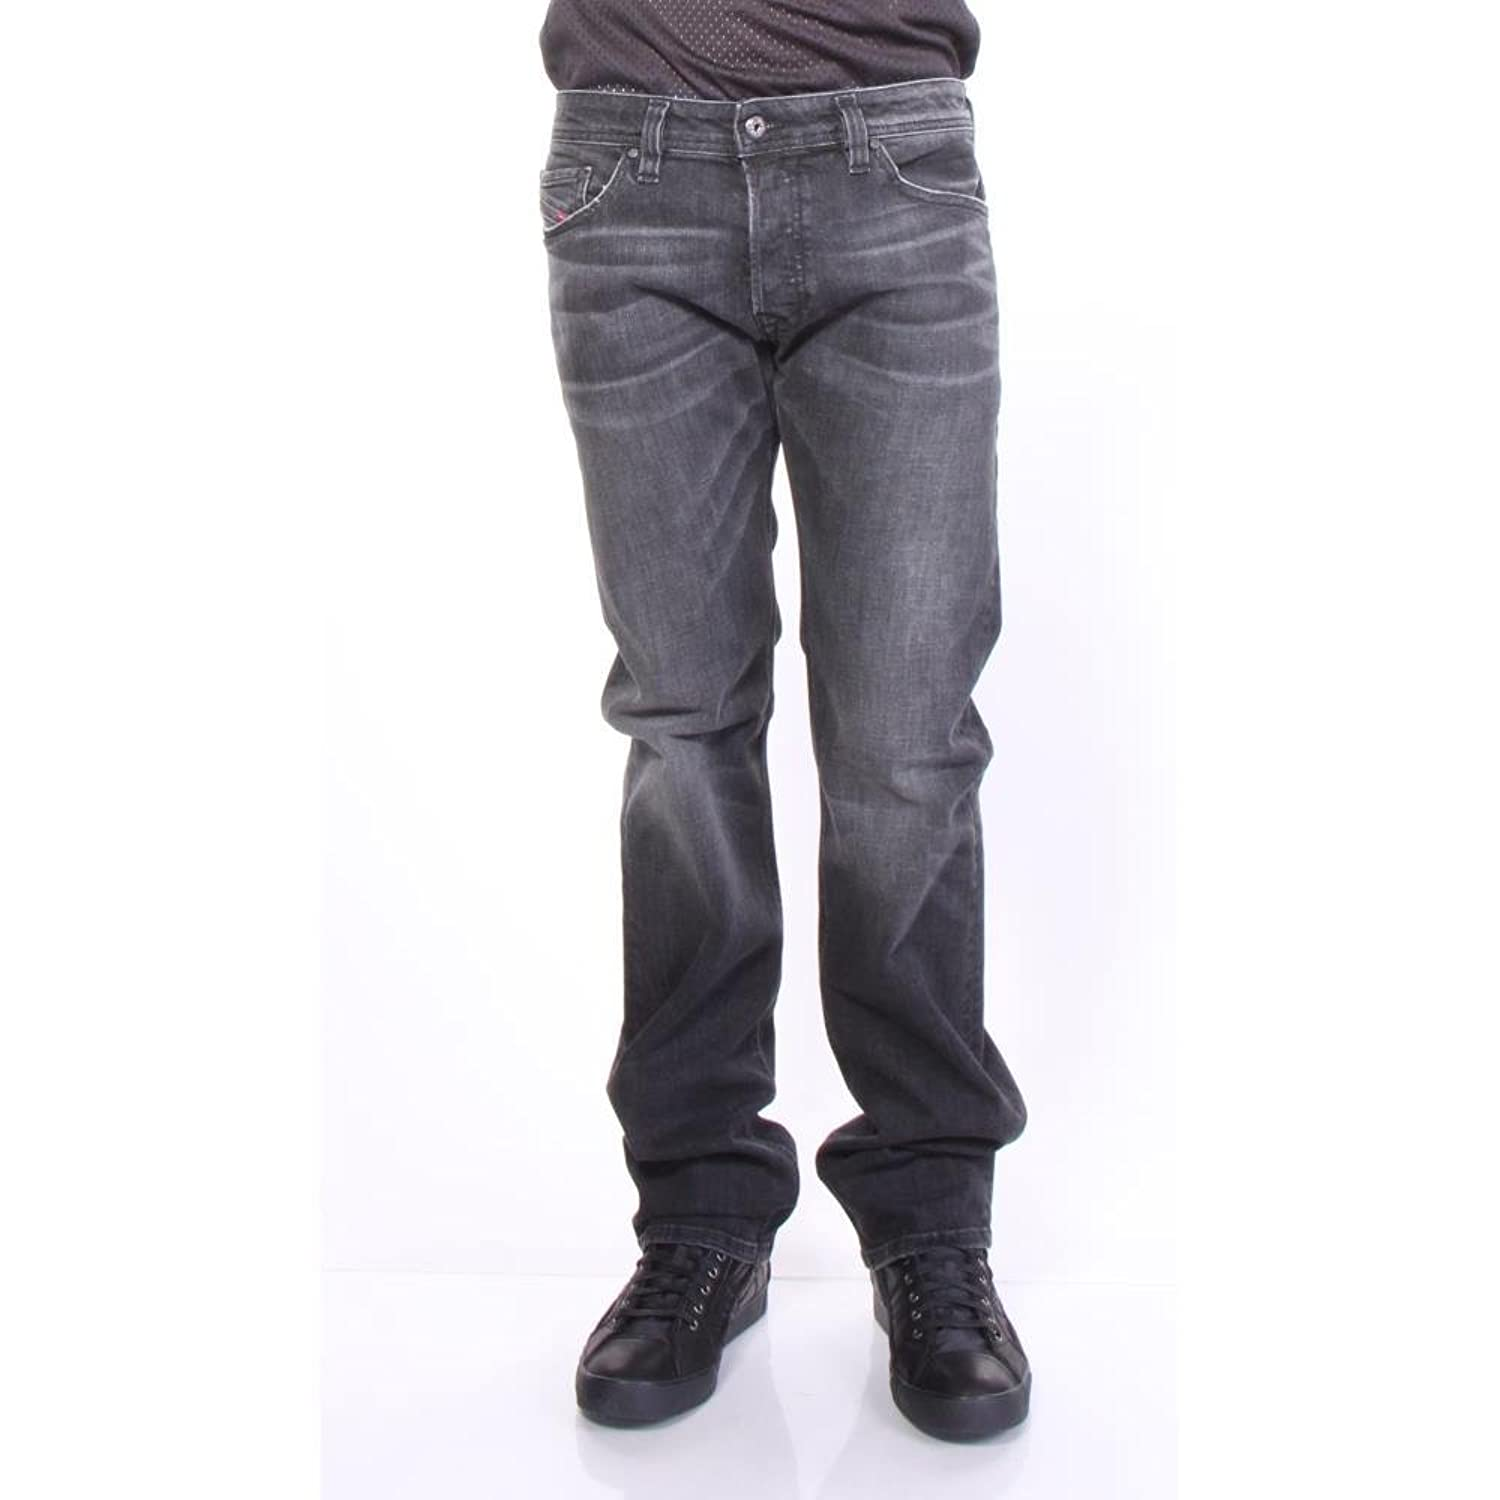 cbc3a52a 95% cotton/4% polyester/1% spandex. Safado jeans, a low waist that\'s  between a tapered and straight fit, relaxed but not loose. Whiskering at  the thigh; ...